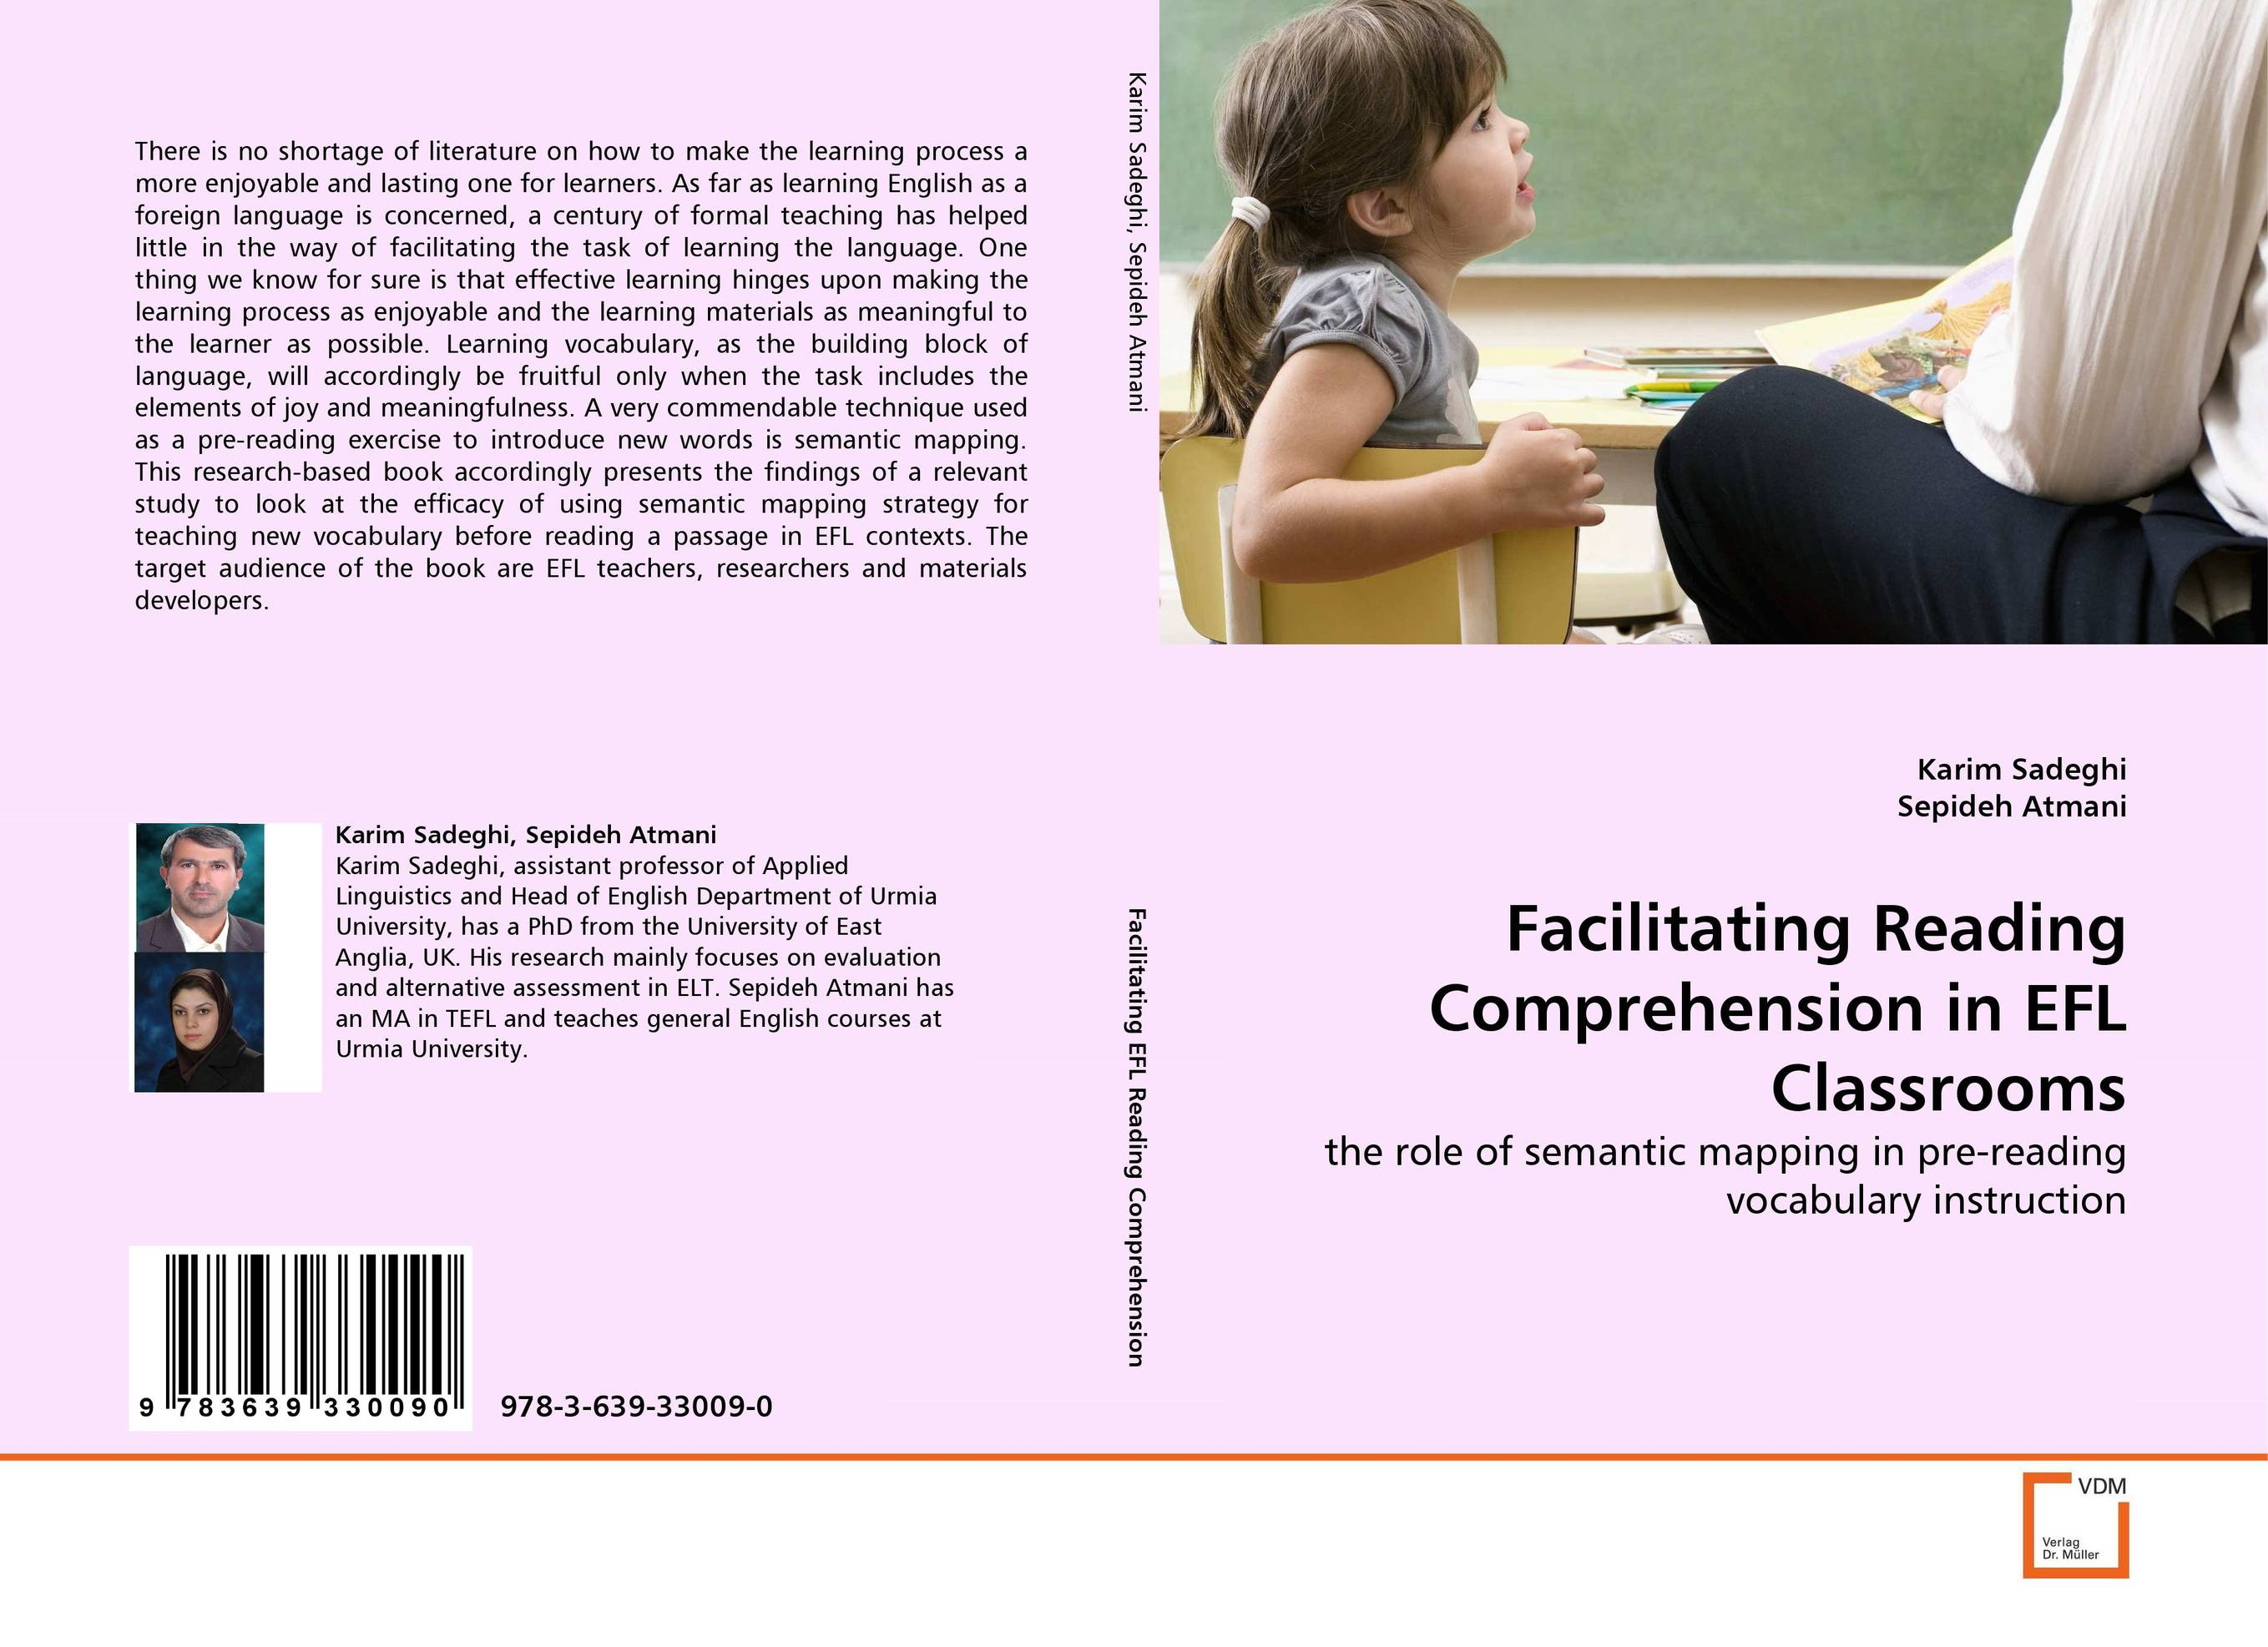 Facilitating Reading Comprehension in EFL Classrooms roshanak nouralian learning based readiness and speaking ability of efl learners